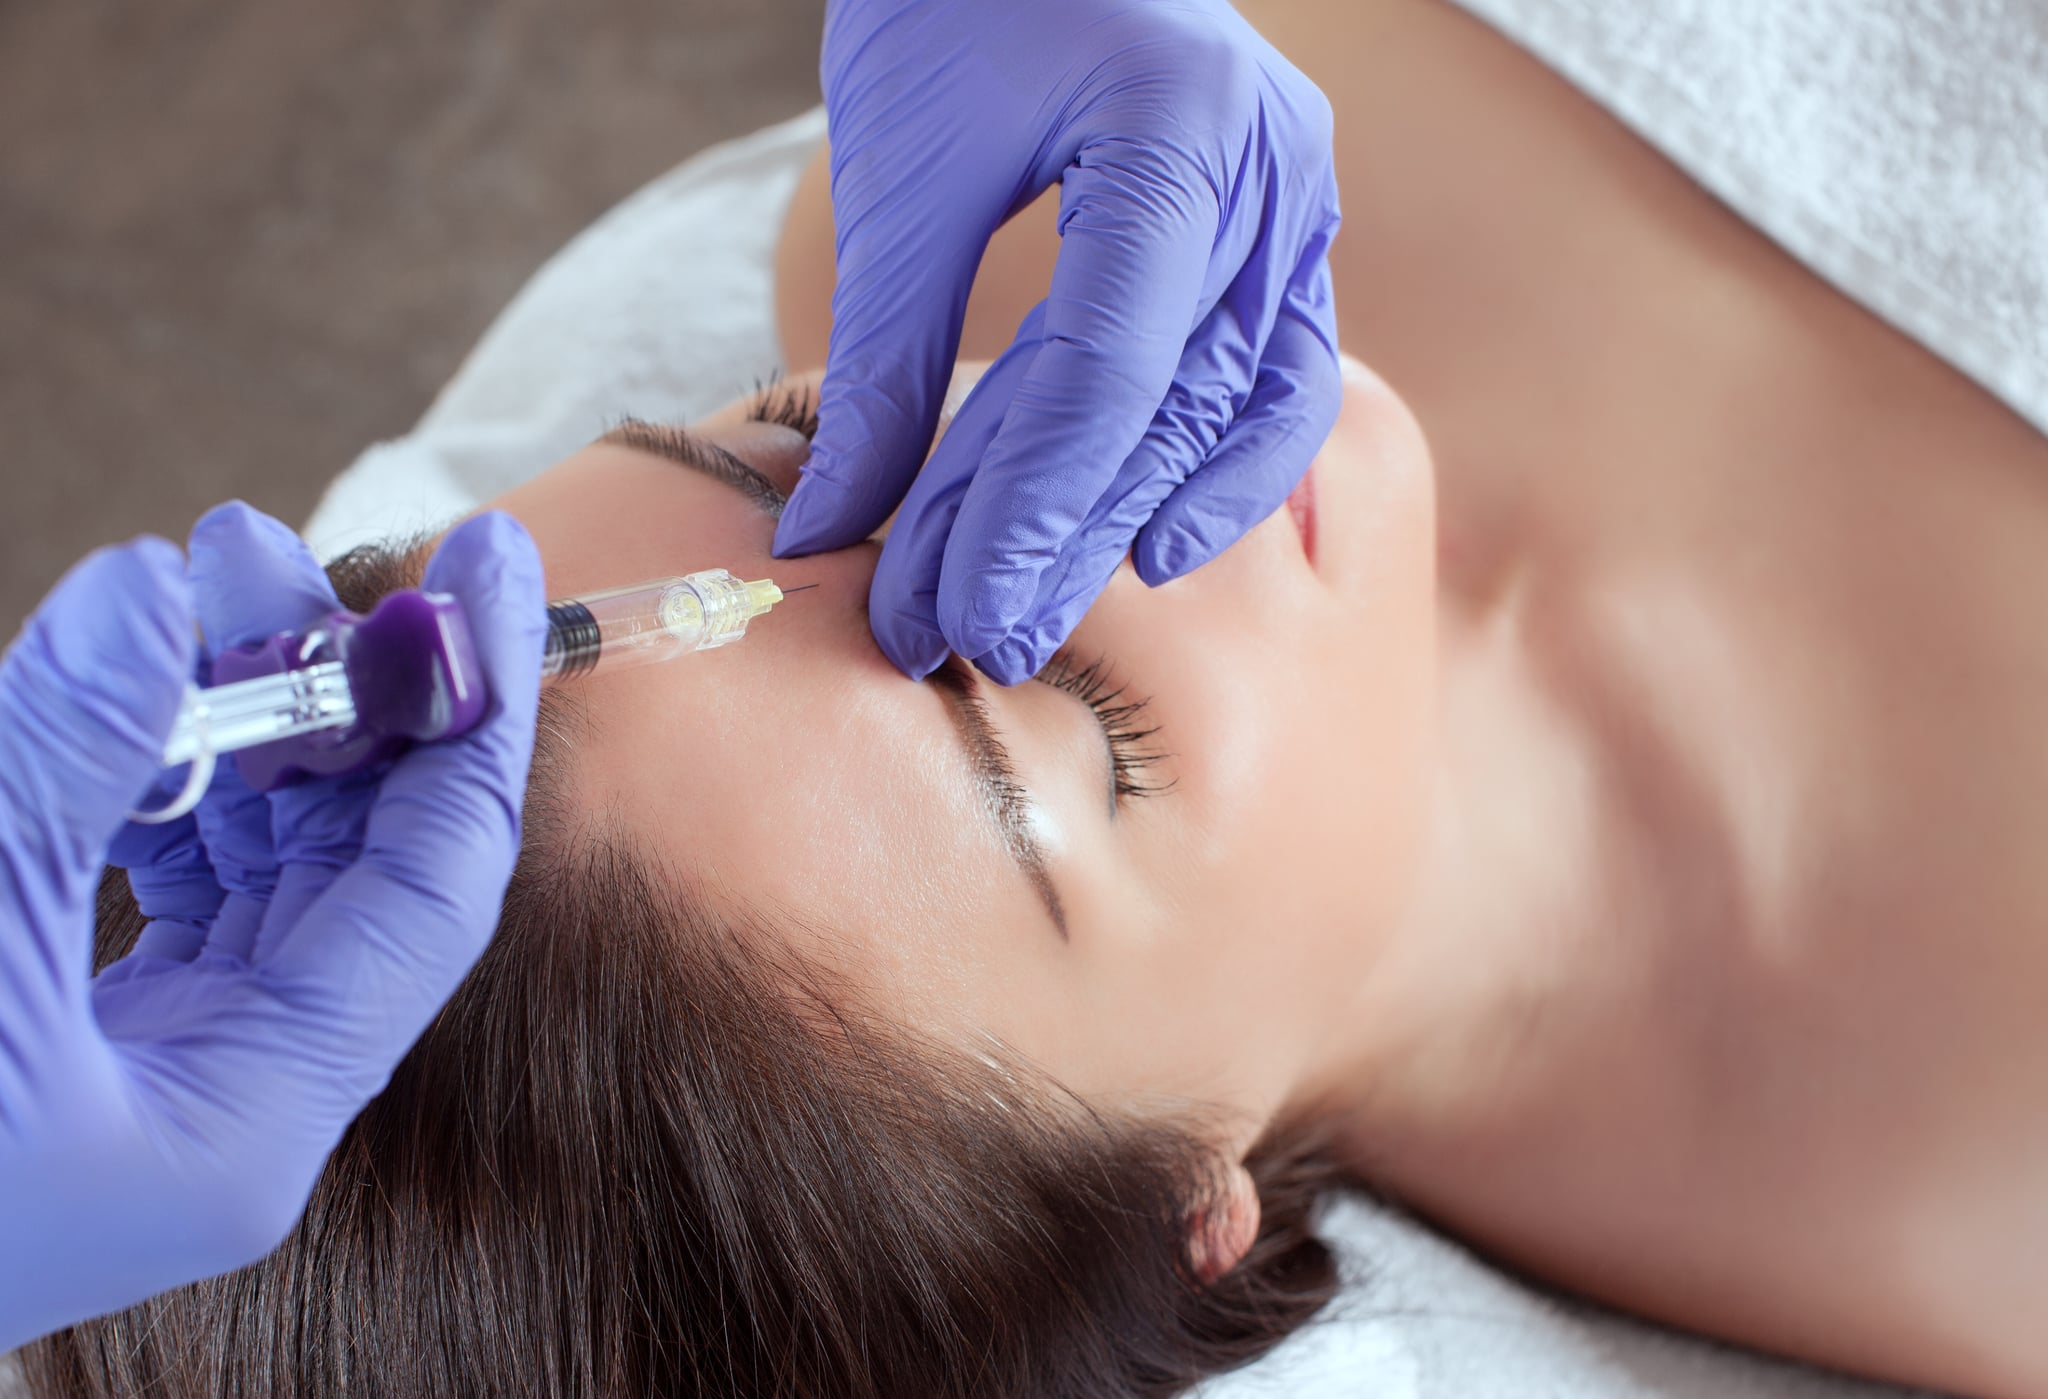 There are a woman and a cosmetologist, the woman is lying and the doctor is making the facial injections procedure for tightening and smoothing wrinkles in a beauty salon.Cosmetology skin care.